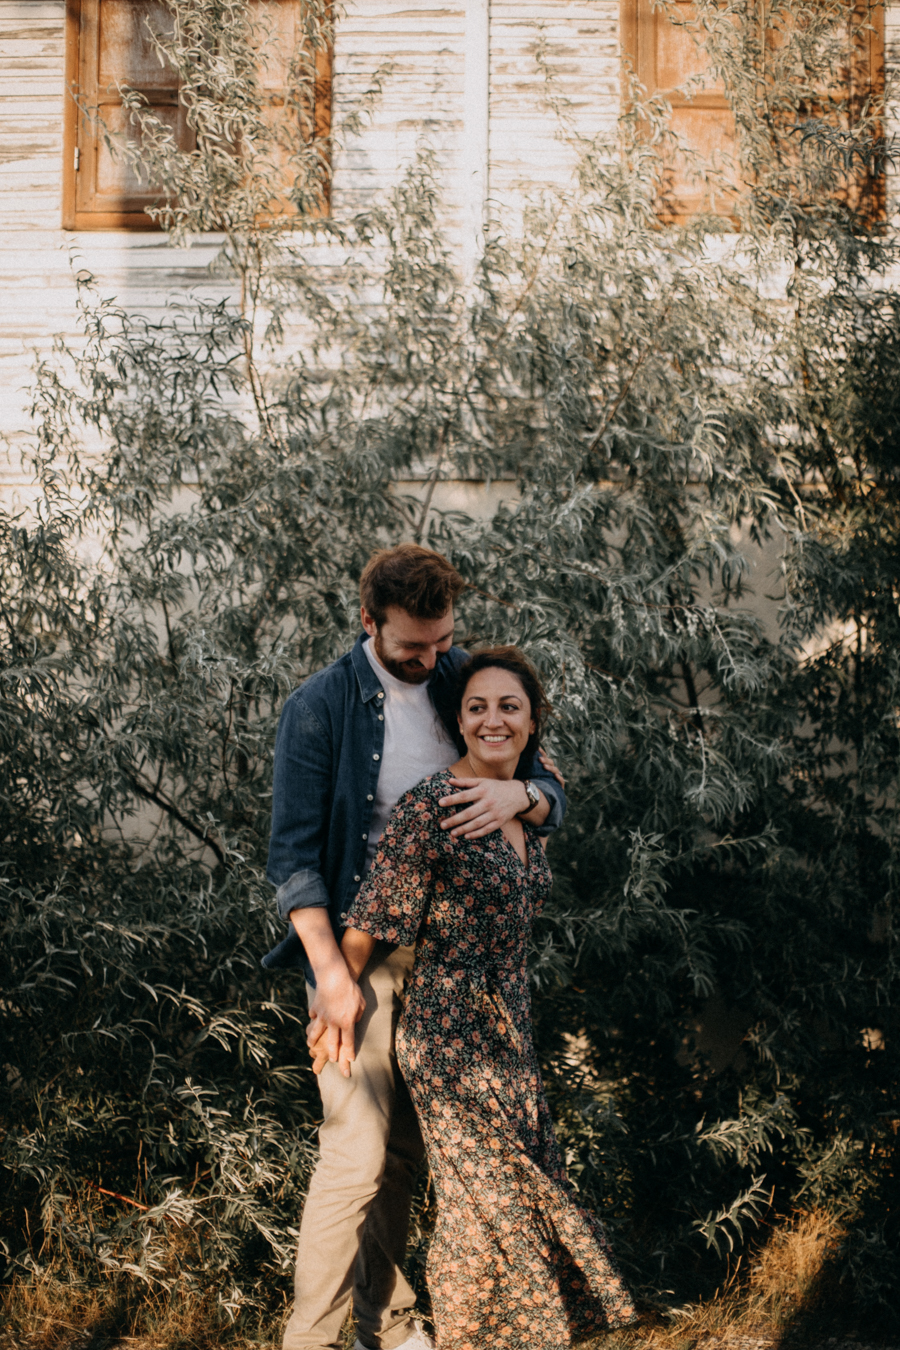 Photographe mariage reportage photo wedding photographer France Lyon Gruissan Narbonne Occitanie coucher de soleil sunset lovers-12